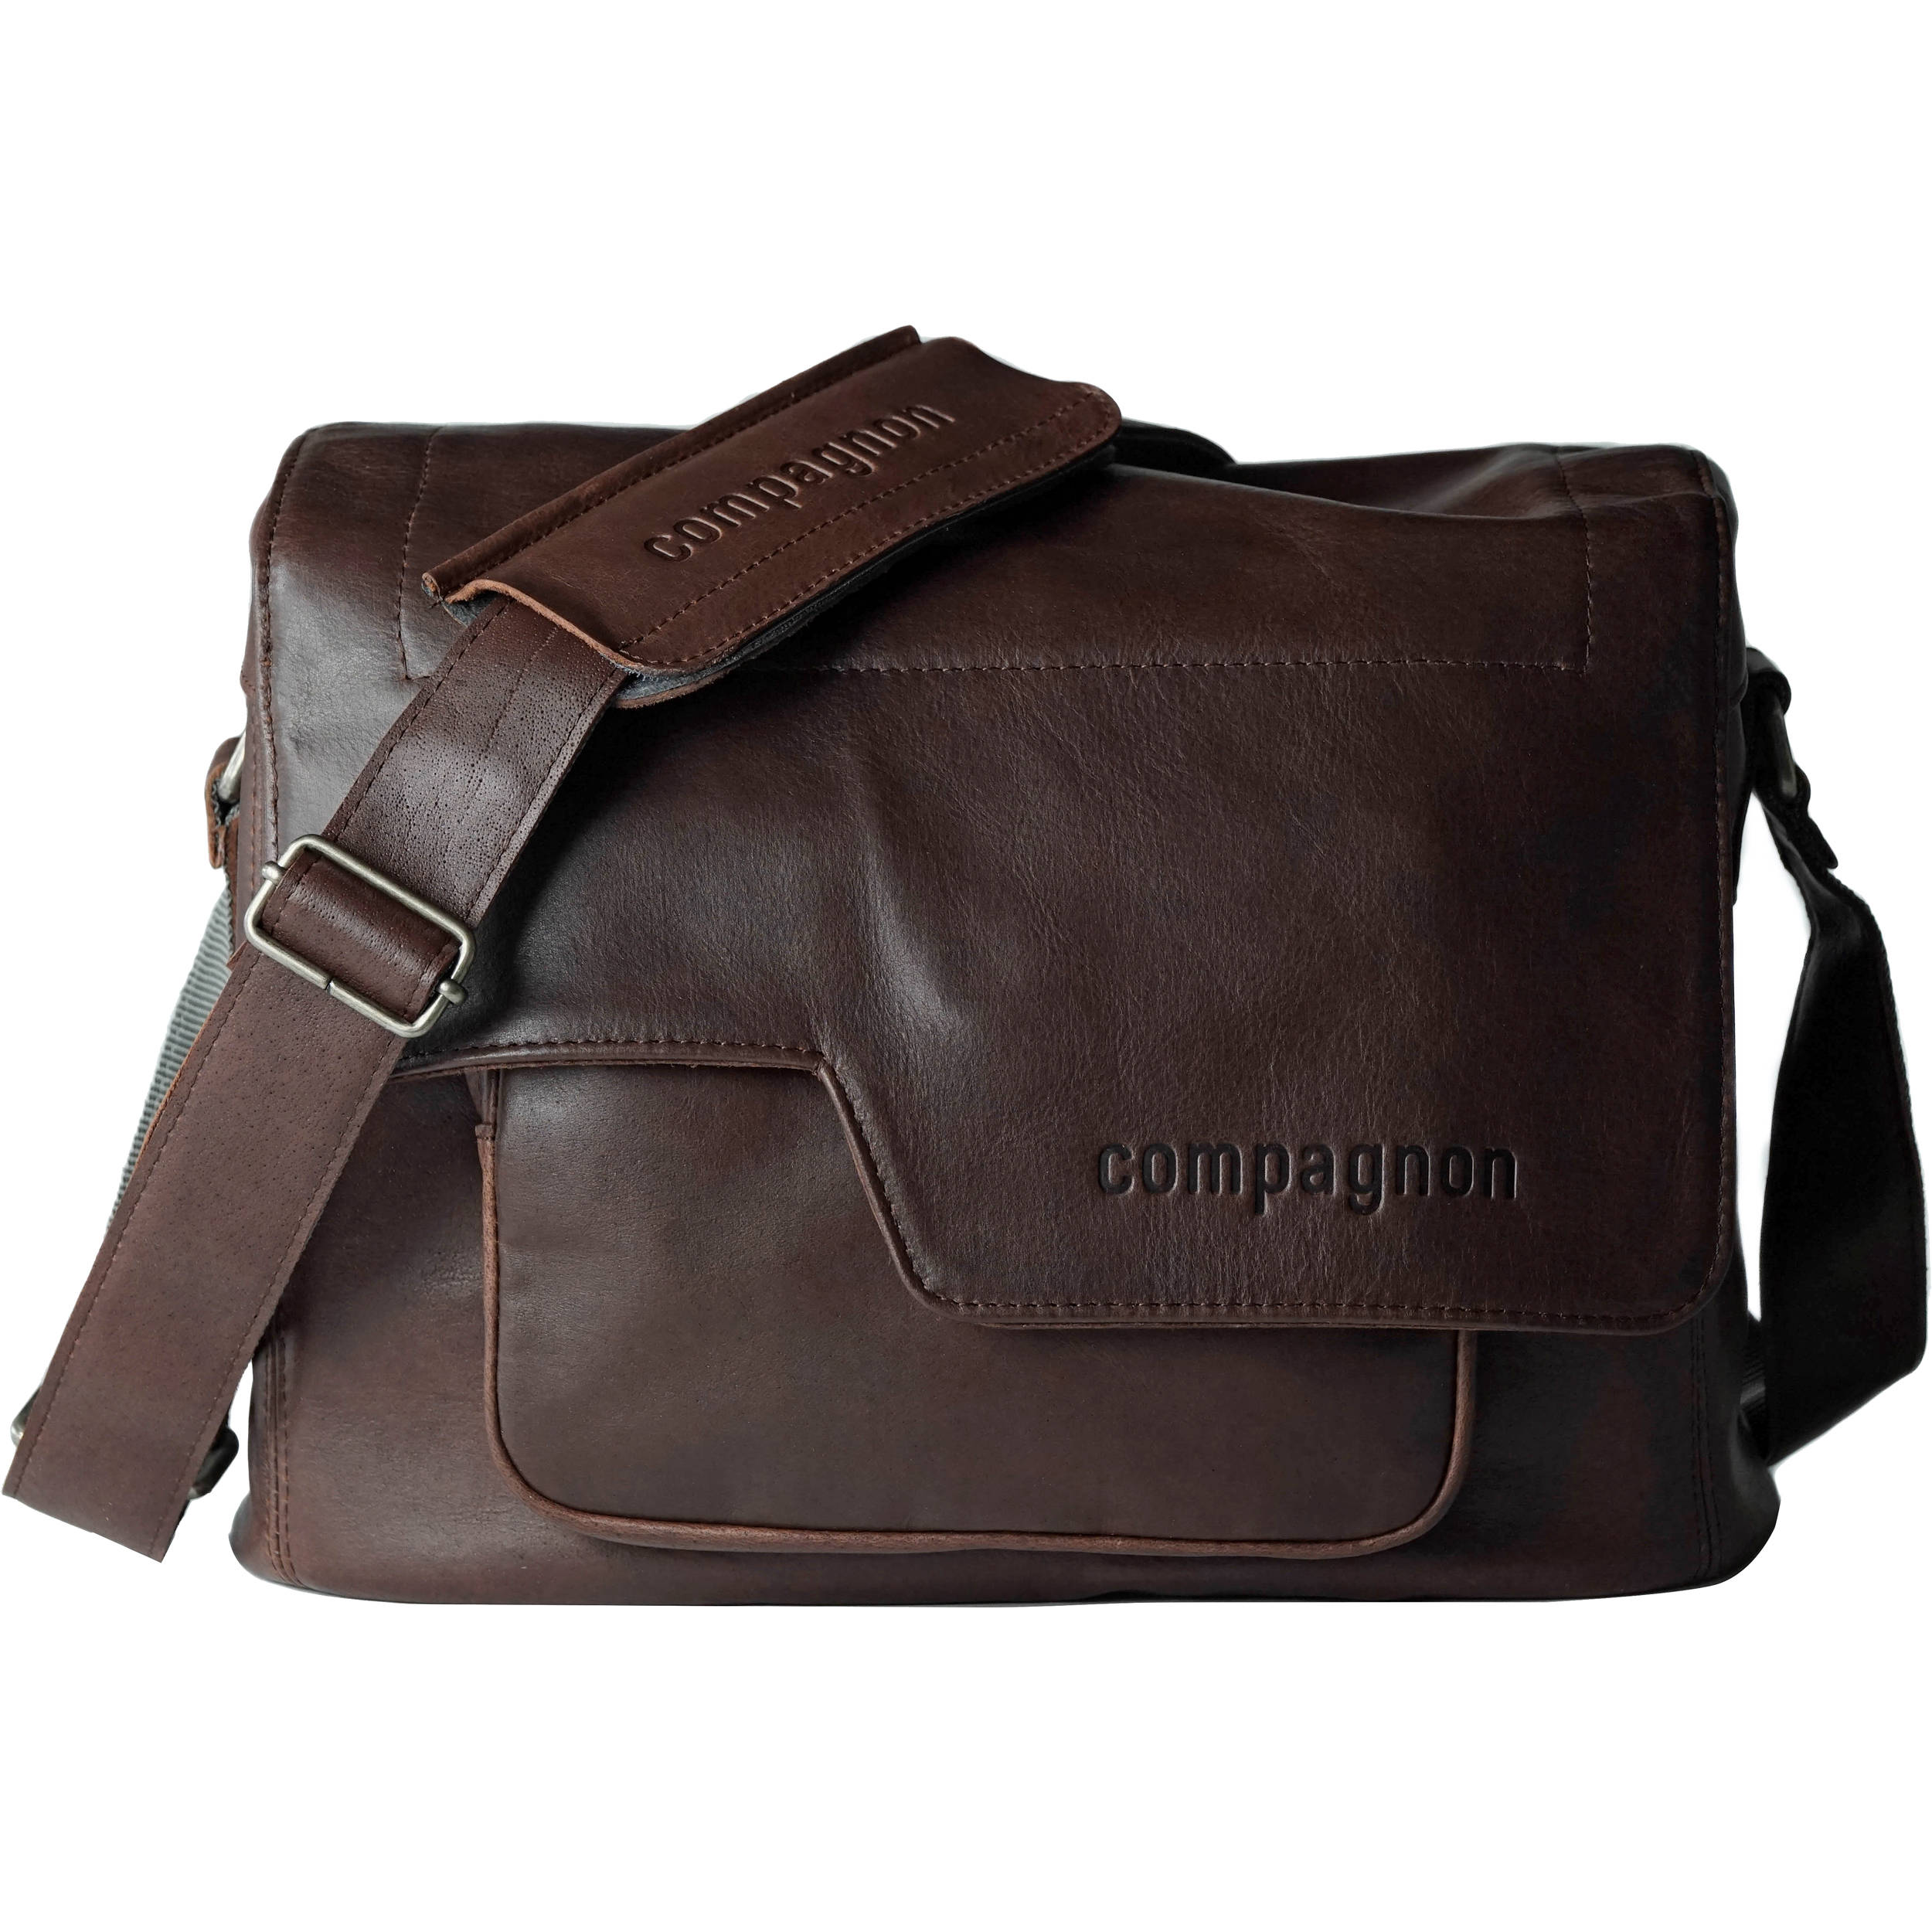 Compagnon The Medium Messenger Leather Camera Bag Dark